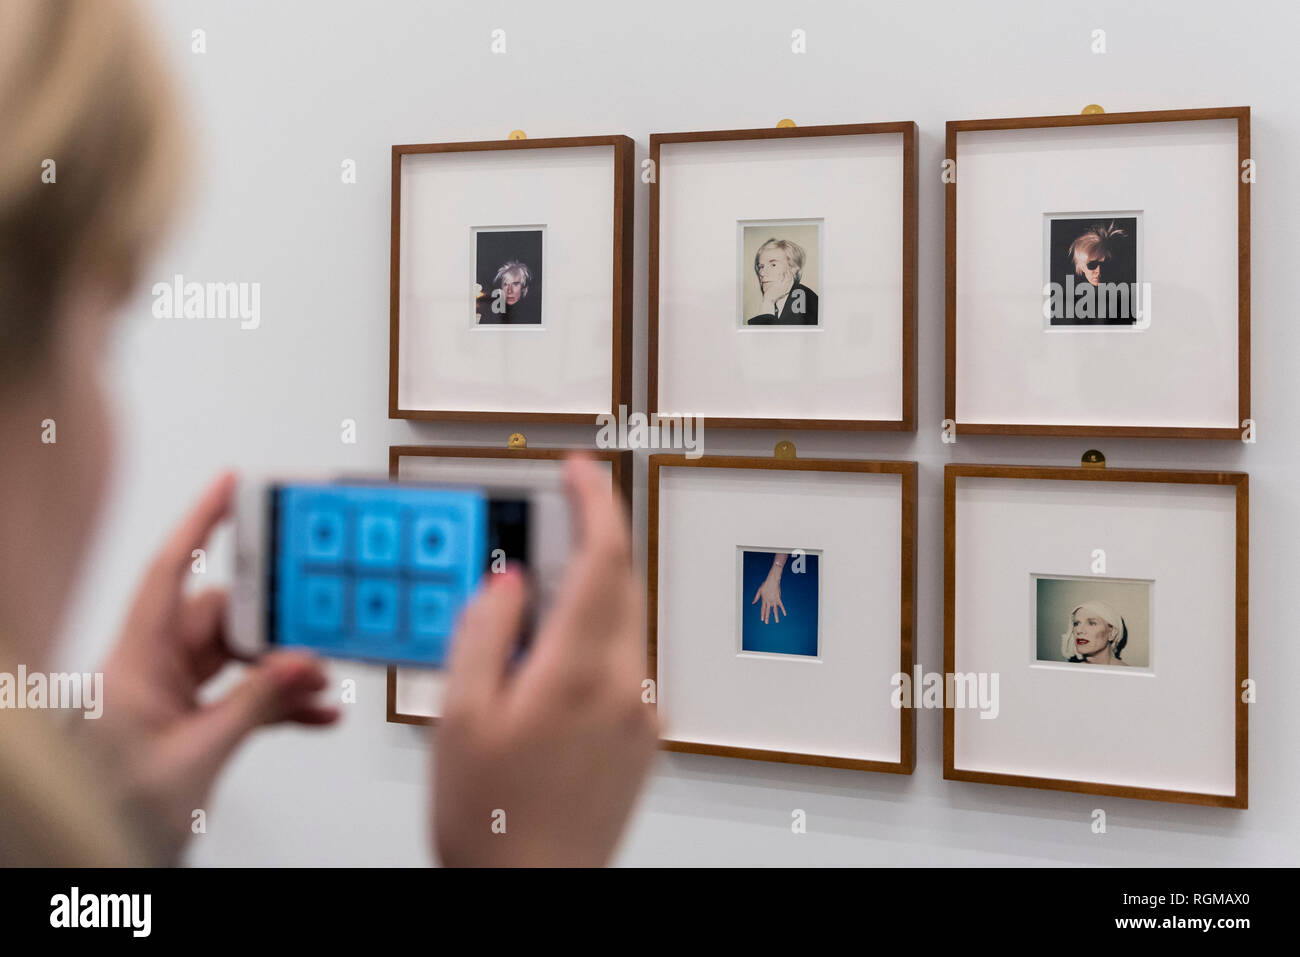 London, UK.  30 January 2019. A visitor photographs a series of self-portraits (1977 to 1986) by Andy Warhol. Preview of 'Andy Warhol Polaroid Pictures', an exhibition of over 60 portrait and self-portrait Polaroid photographs by Andy Warhol.  The works, which depict artists, actors, politicians and friends of his Factory entourage in New York during the 1970s and 80s, are on display 2 February to 13 April 2019 at Bastian Gallery in Mayfair.  Credit: Stephen Chung / Alamy Live News - Stock Image